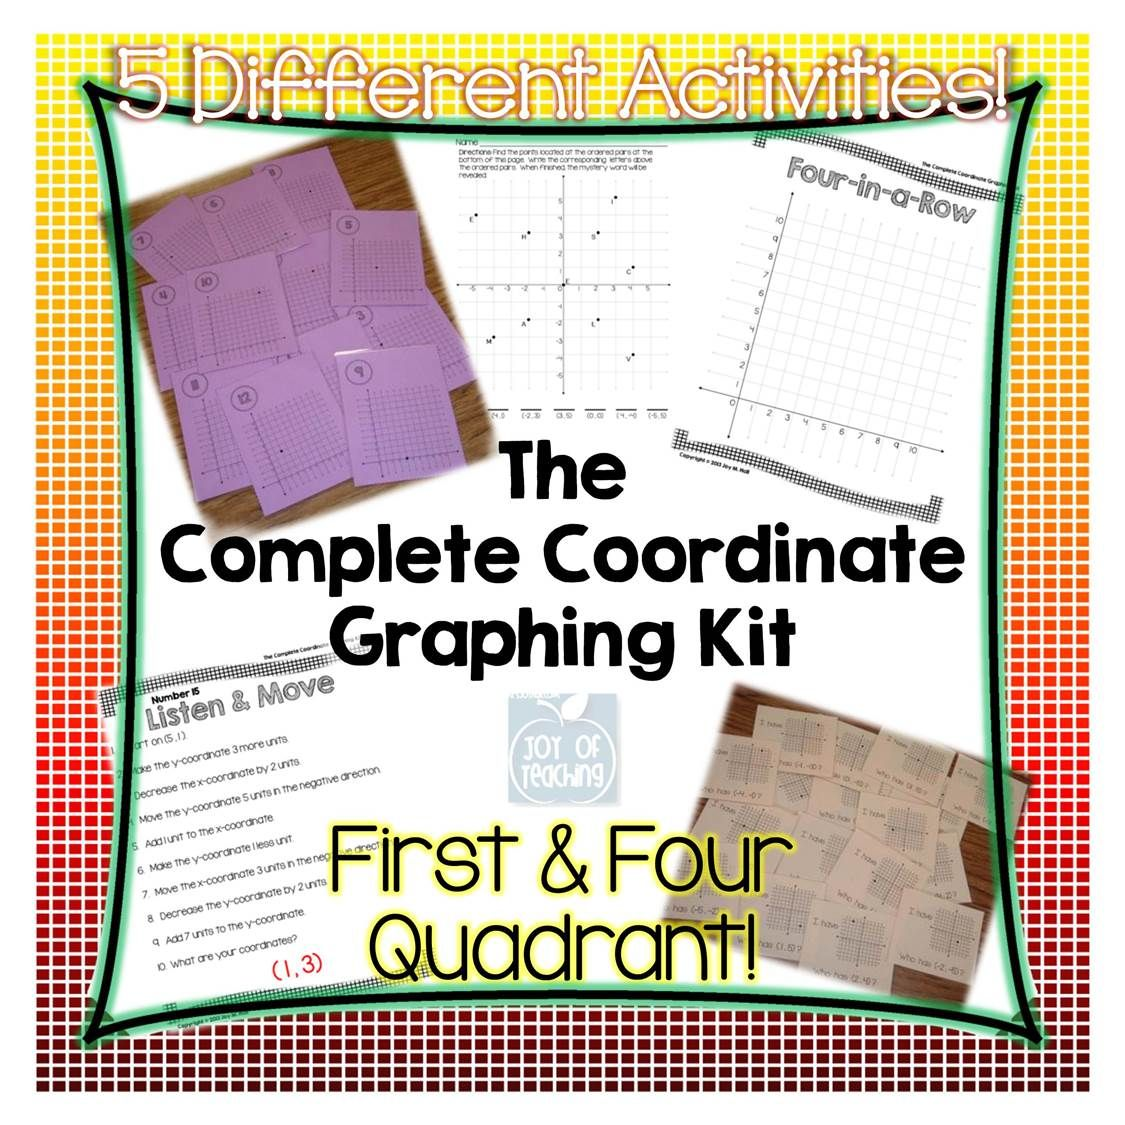 The Complete Coordinate Graphing Kit Covers Both First